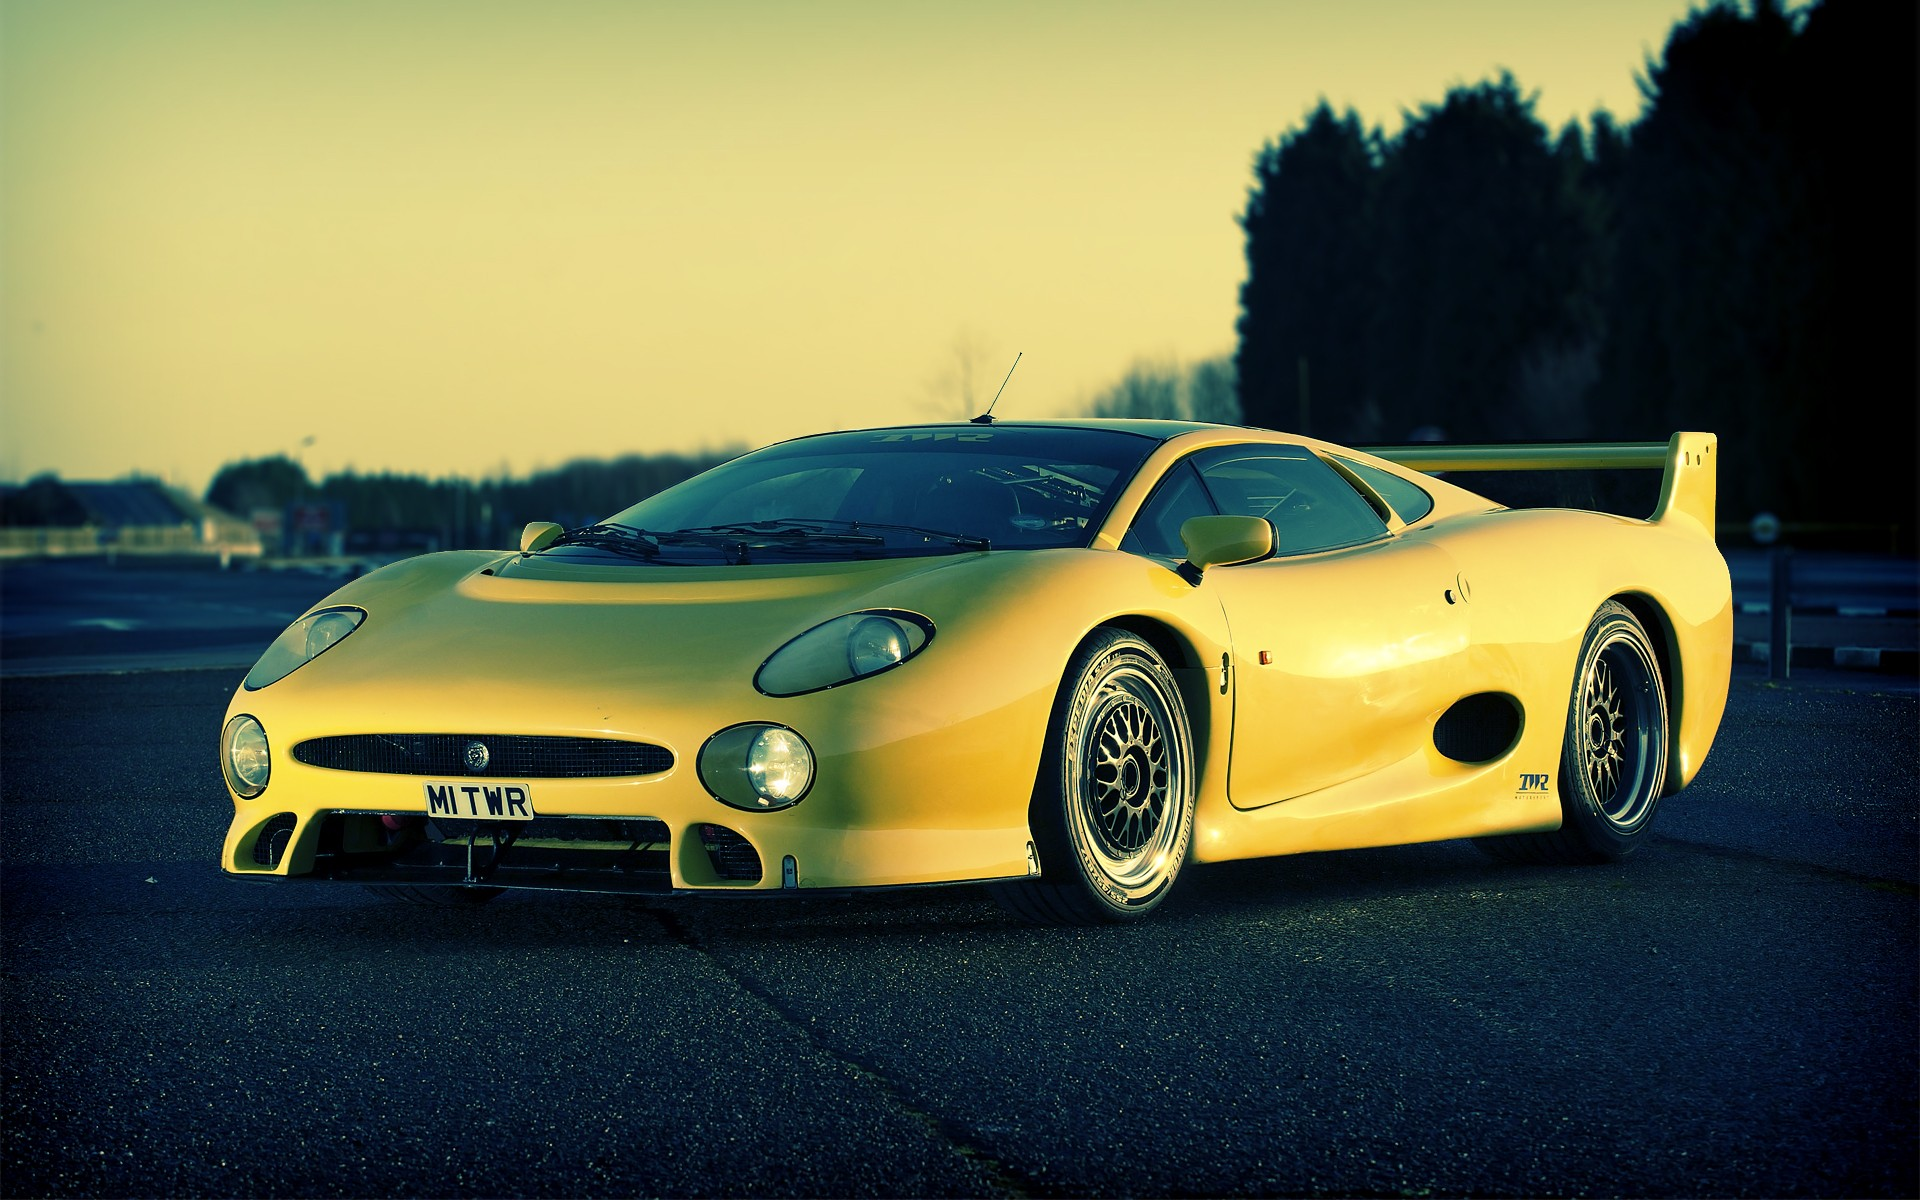 Jaguar Xj220 For Sale >> The Unforgettable Cars of the '90s Pt. 1 [30 Pics] | I Like To Waste My Time